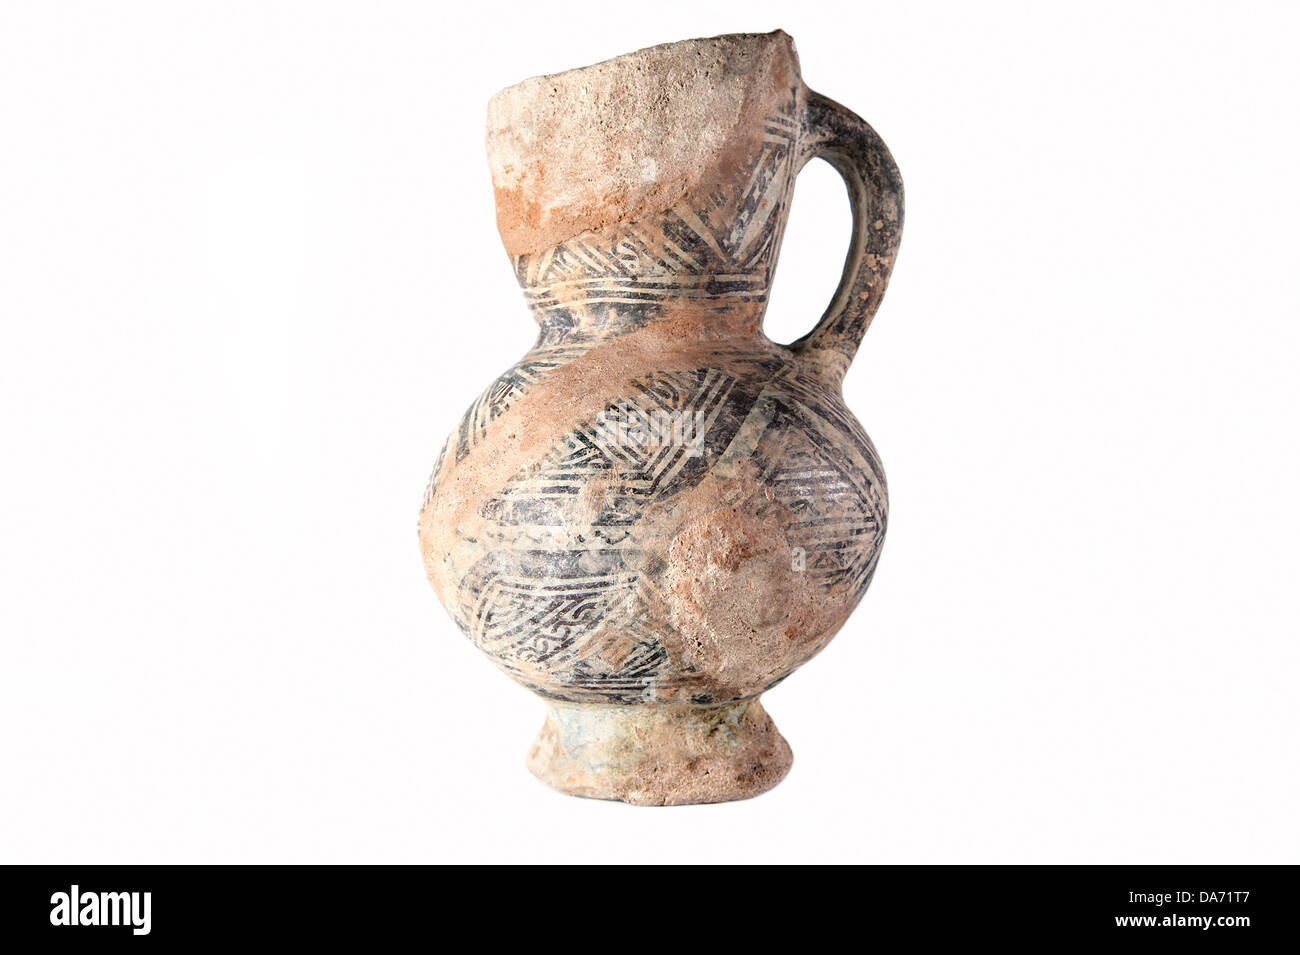 Clay old Middle Eastern jug on the white background - Stock Image